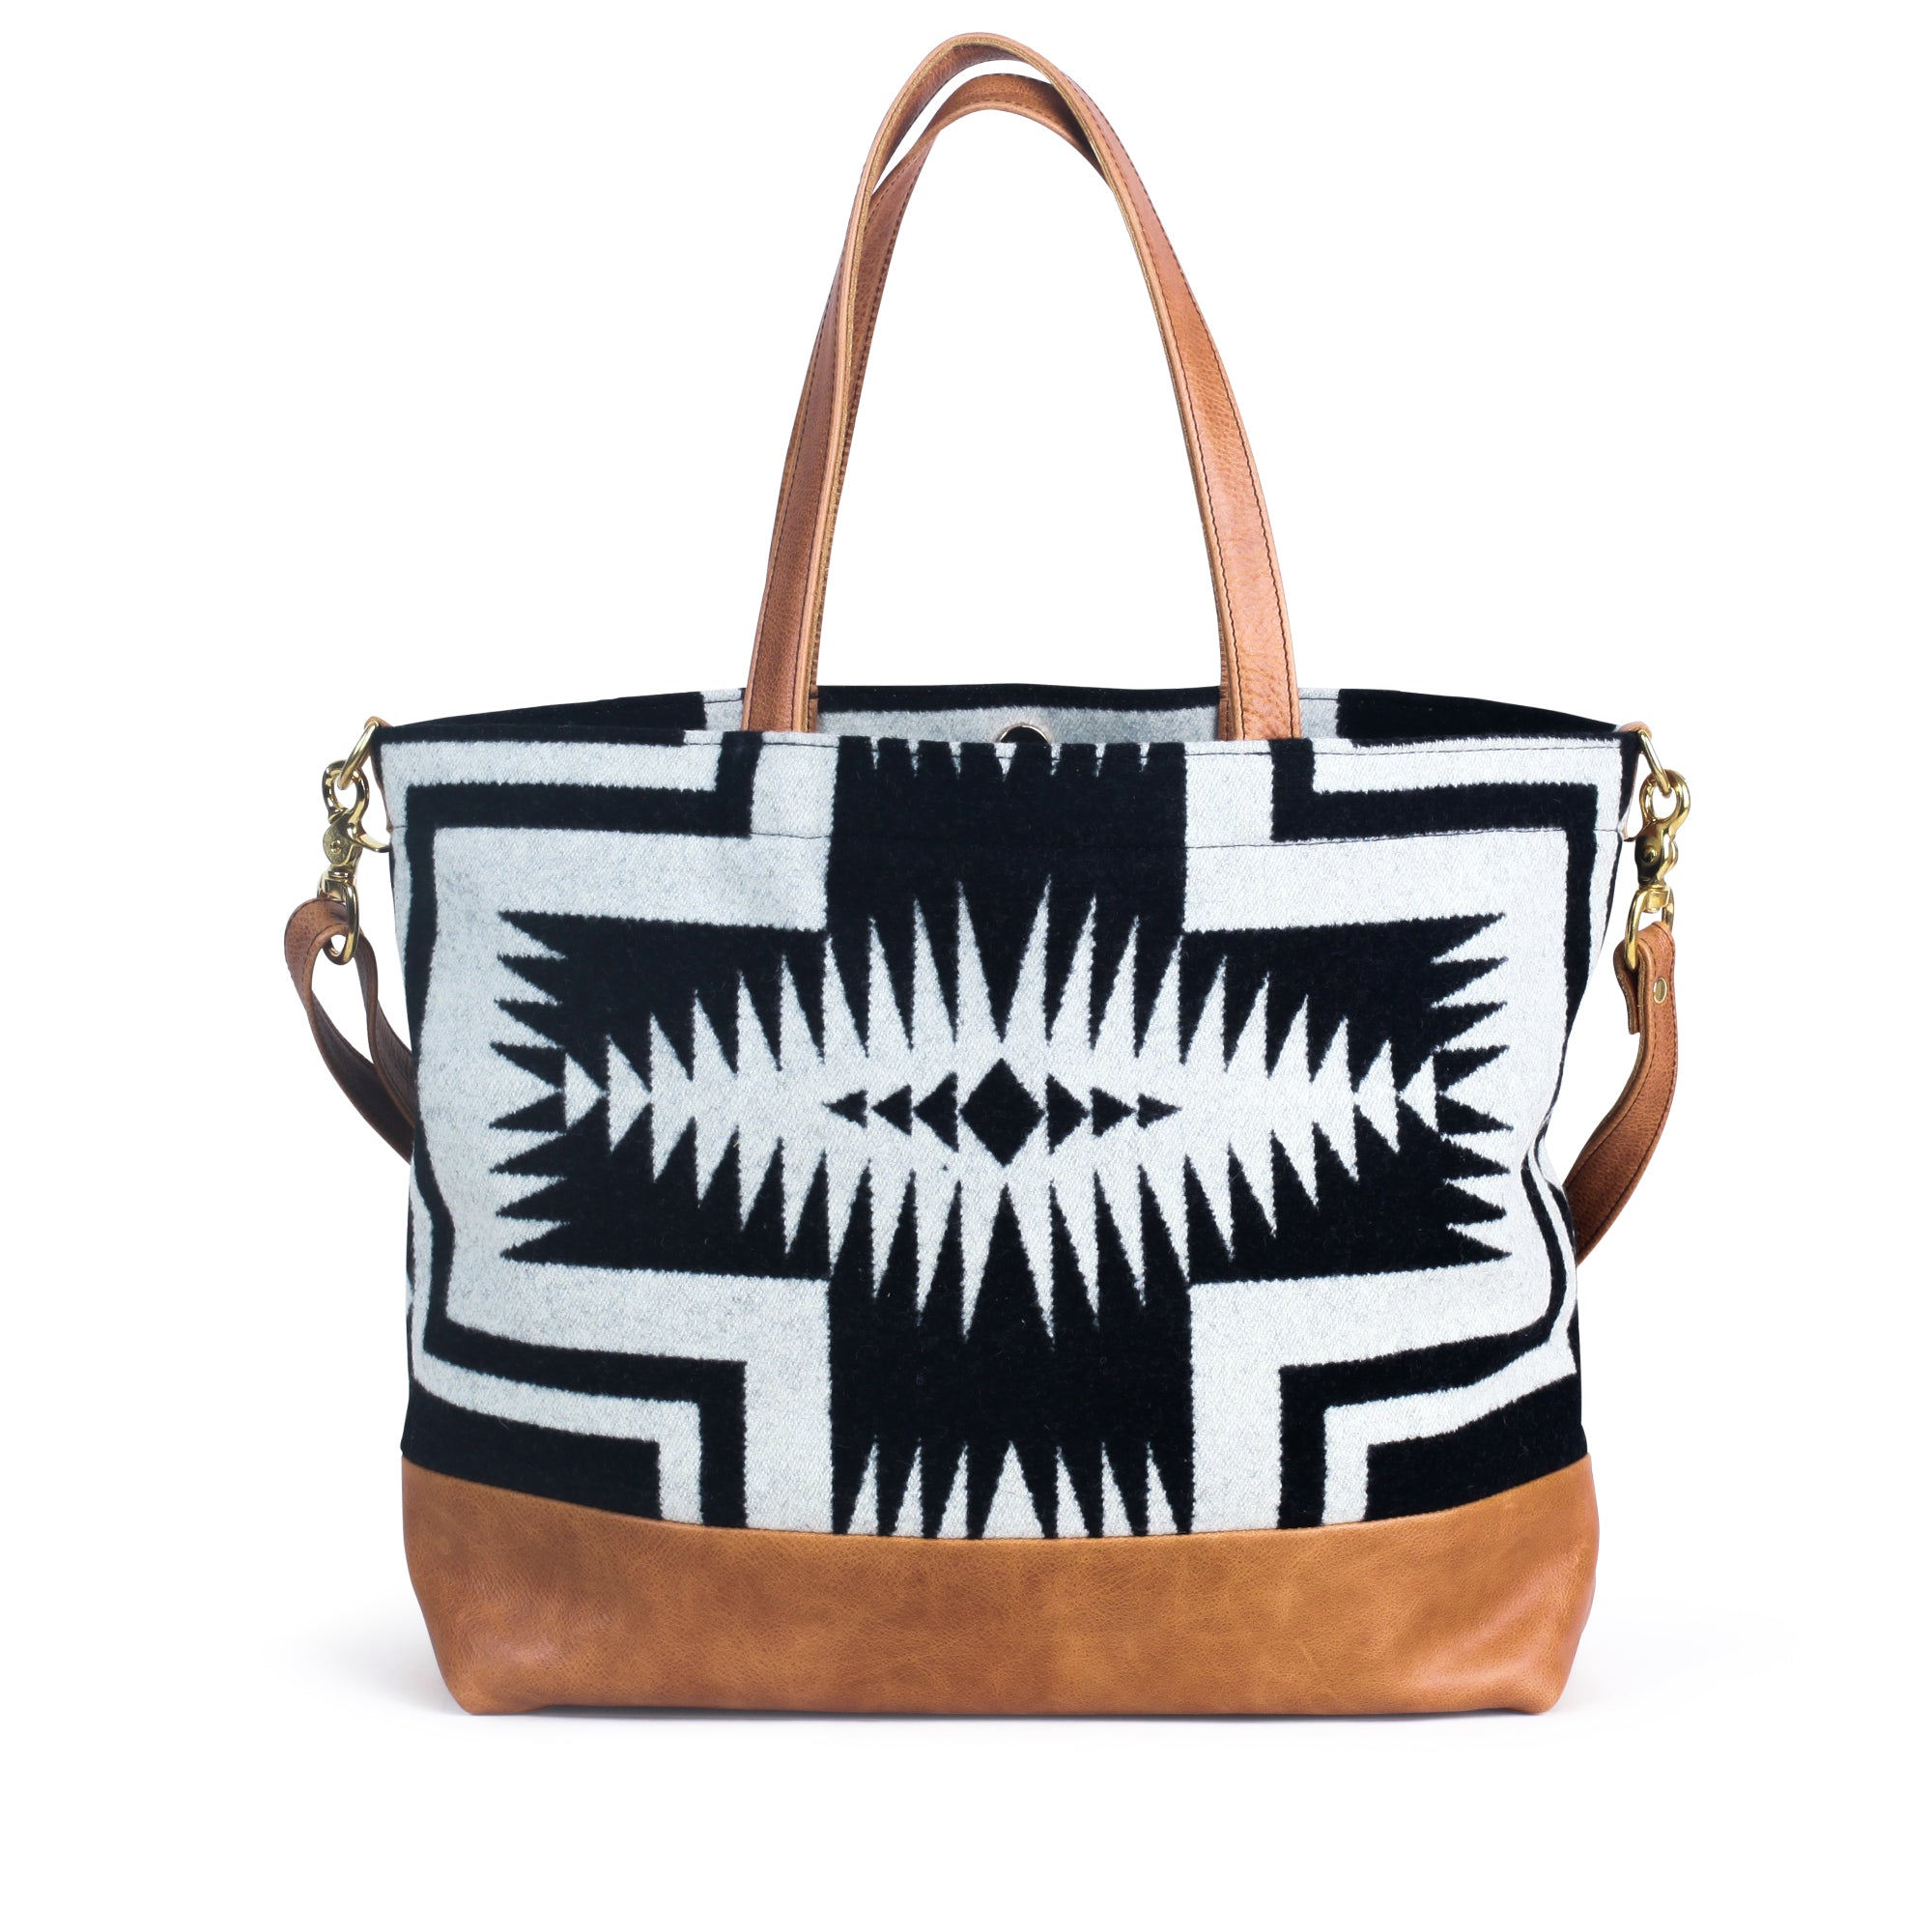 The Shia Tote - Pendleton® Luna Saddle - Rais Case - Image 1